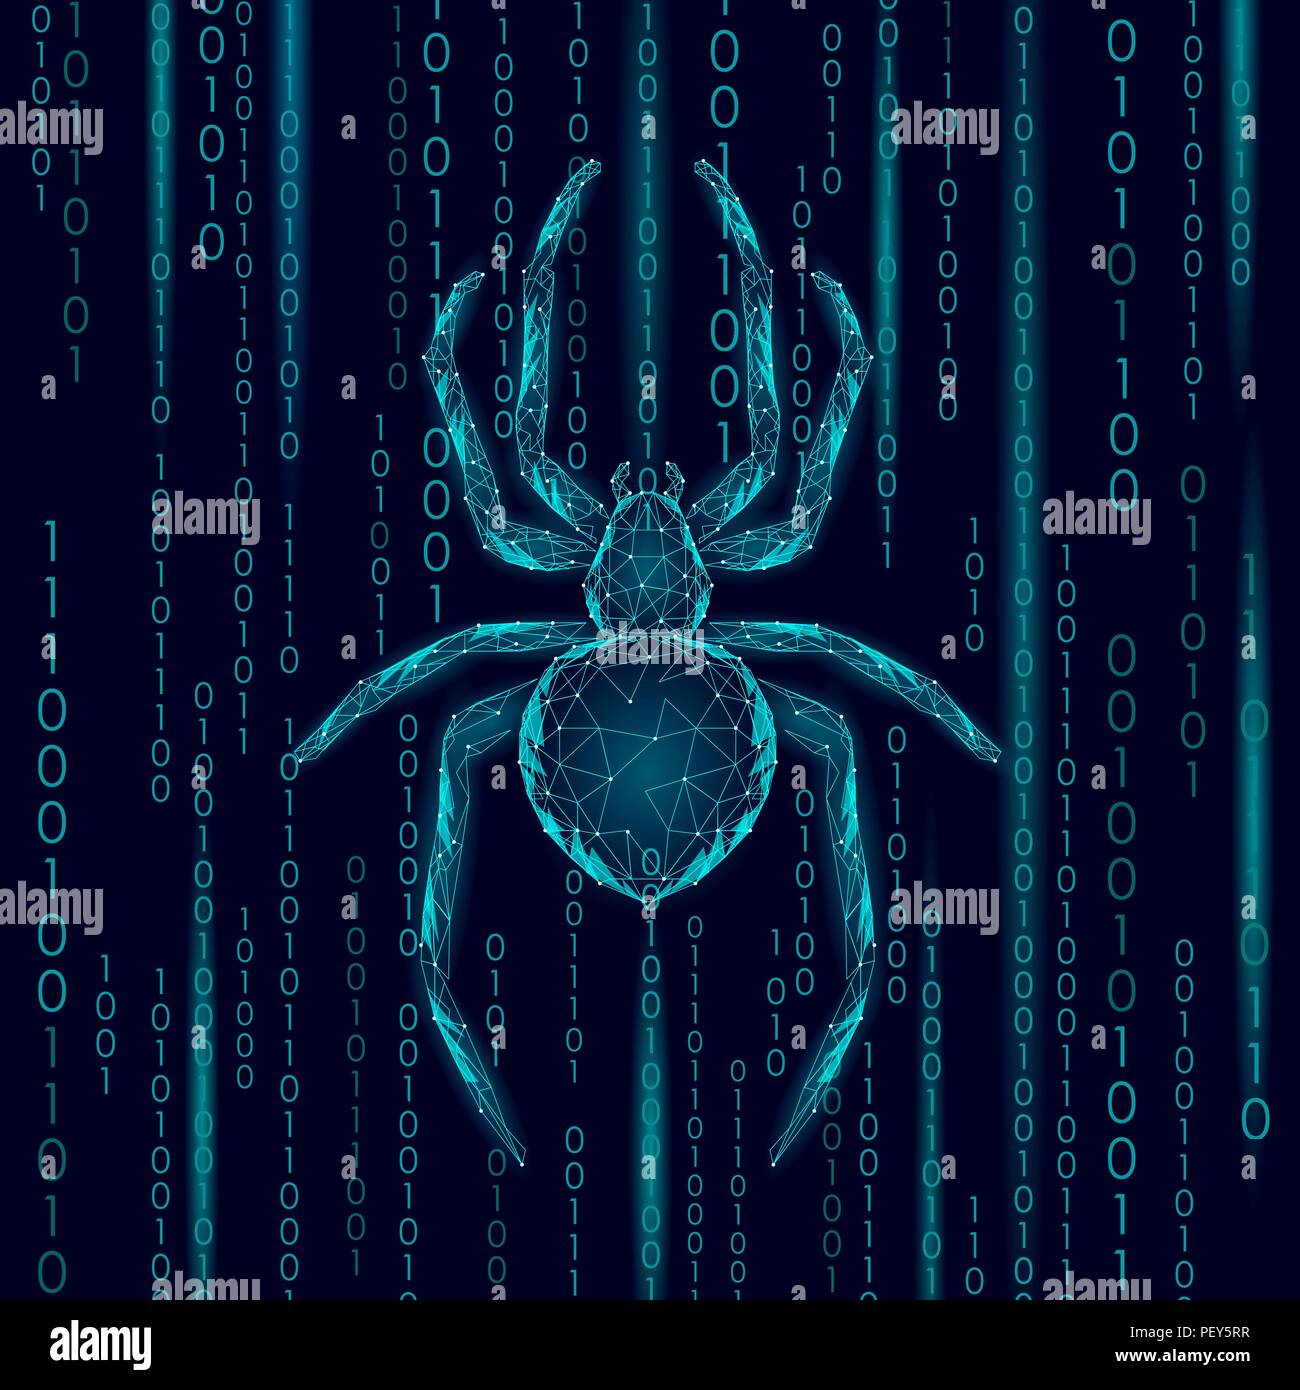 Low poly spider hacker attack danger. Web security virus data safety antivirus concept. Polygonal modern design business concept. Cyber crime web insect bug technology vector illustration - Stock Image